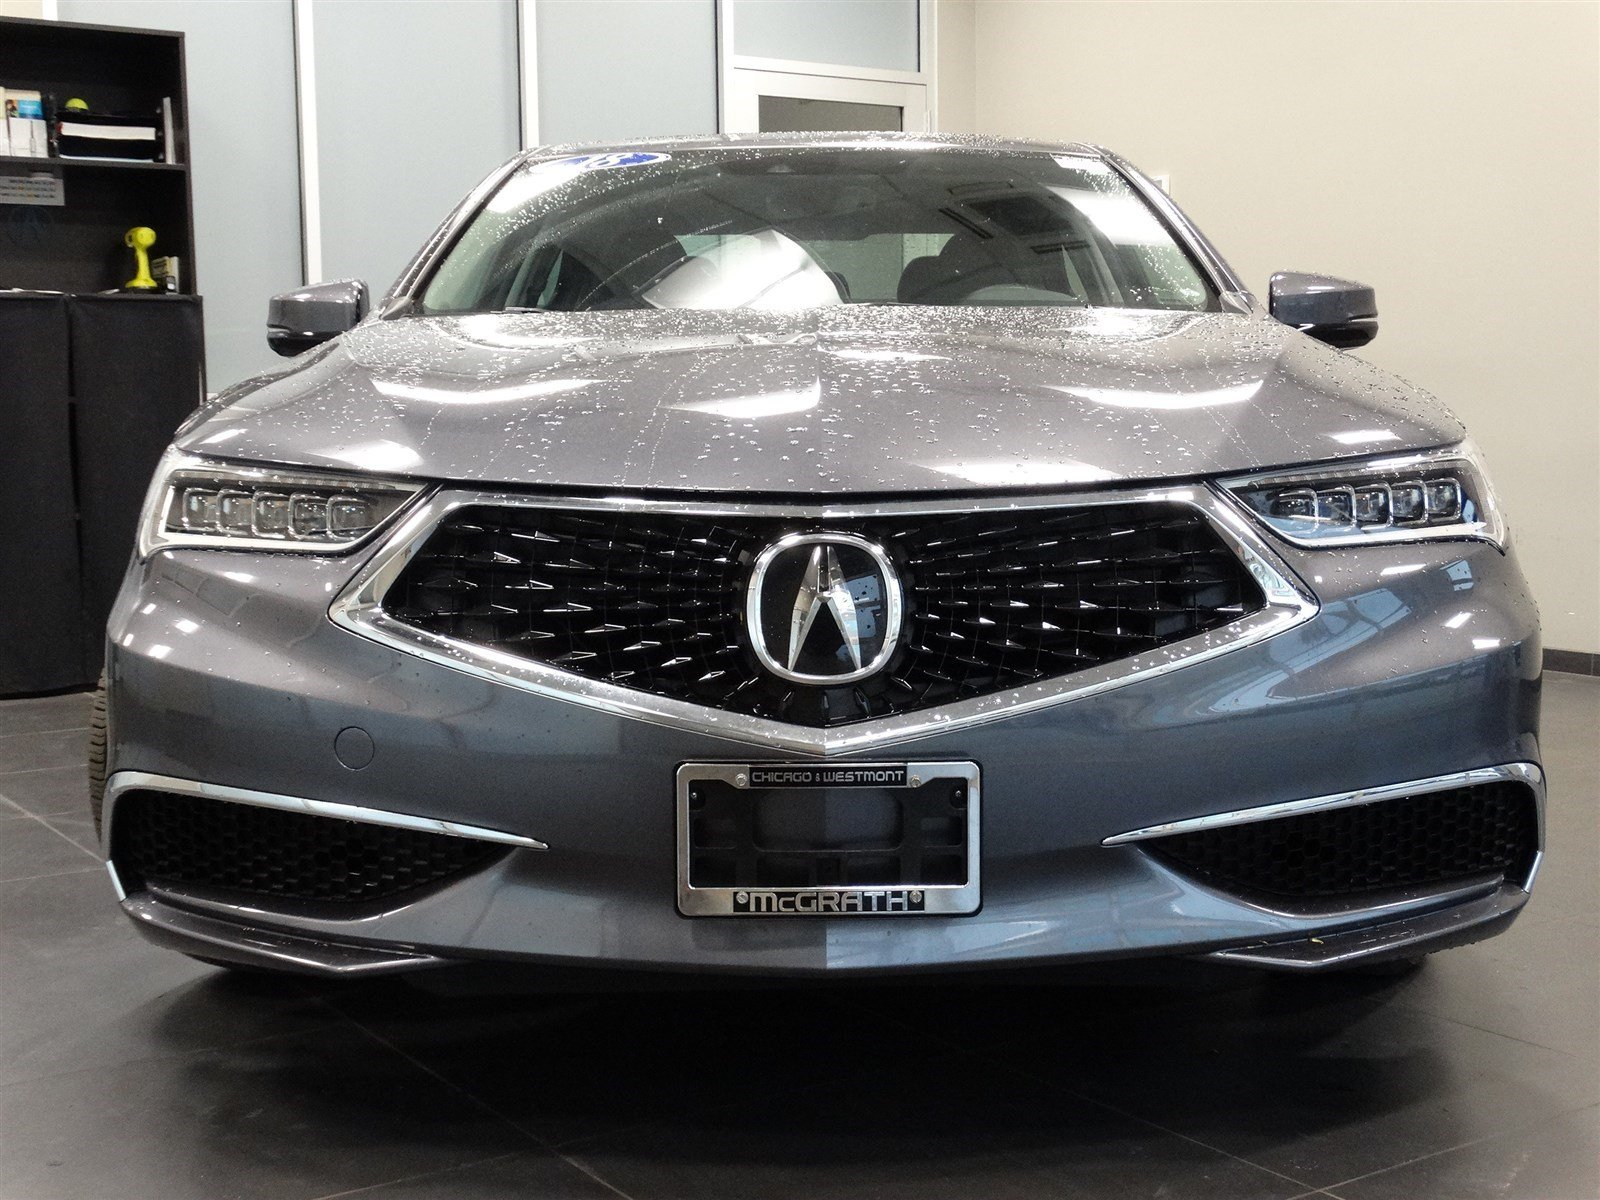 tlx in acura muller fwd of car woodfield pkg available chicagoland trim tech chicago levels inspirational dealers expensive ilx